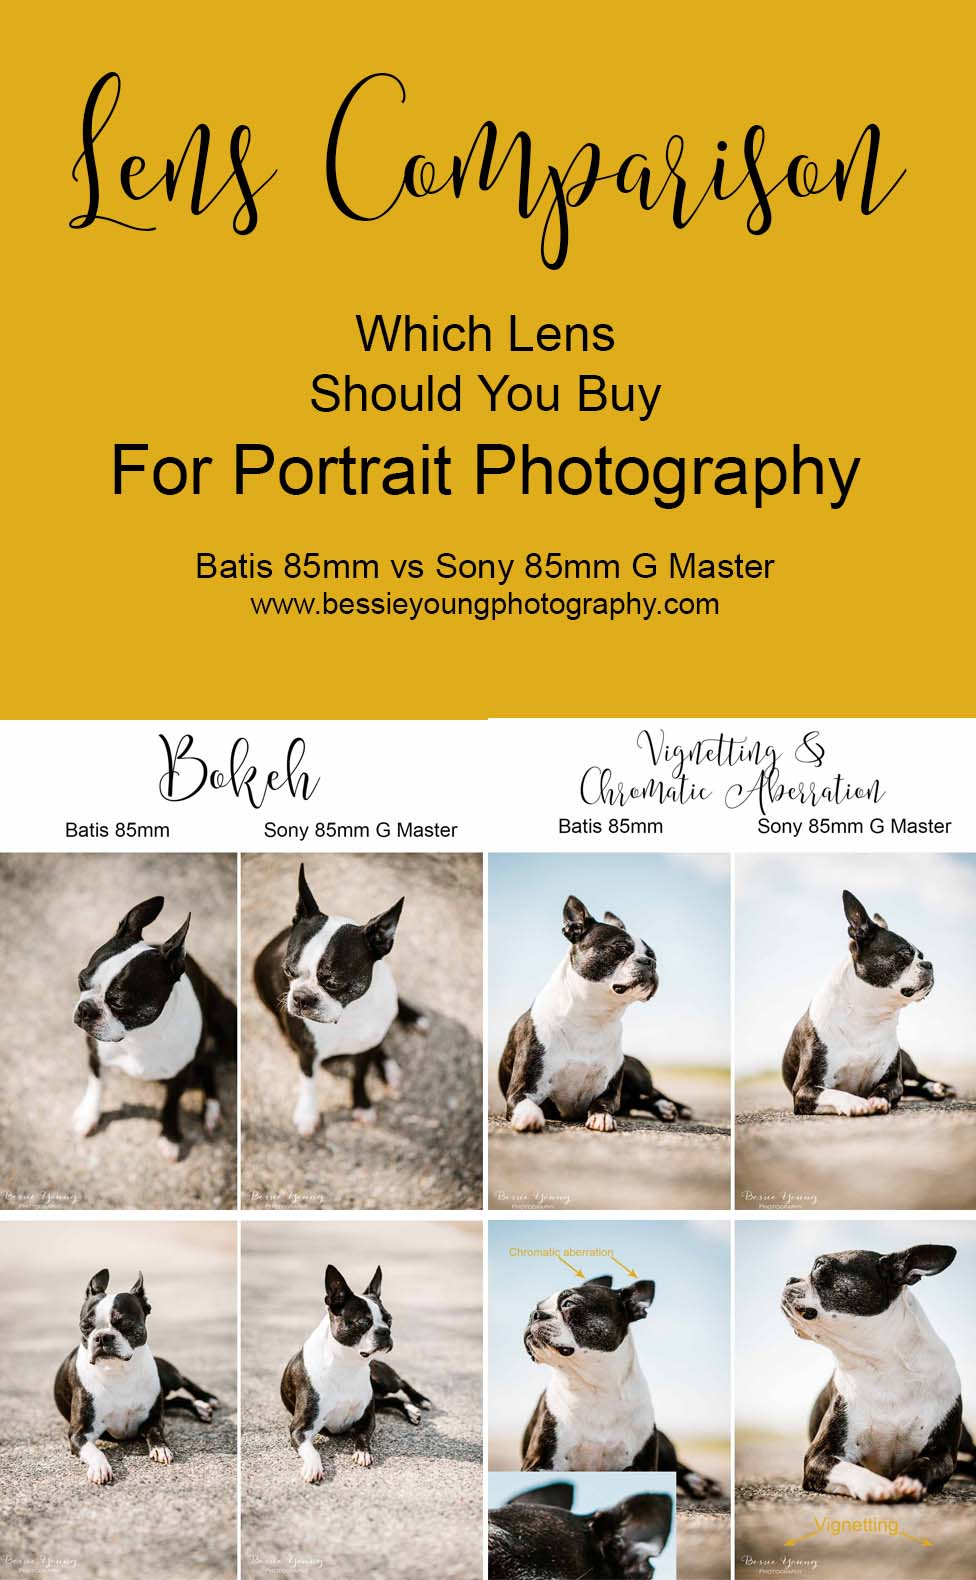 Batis 85mm vs Sony 85mm G master lens comparison Which Lens Should You Buy For Portrait Photography by Bessie Young Photography